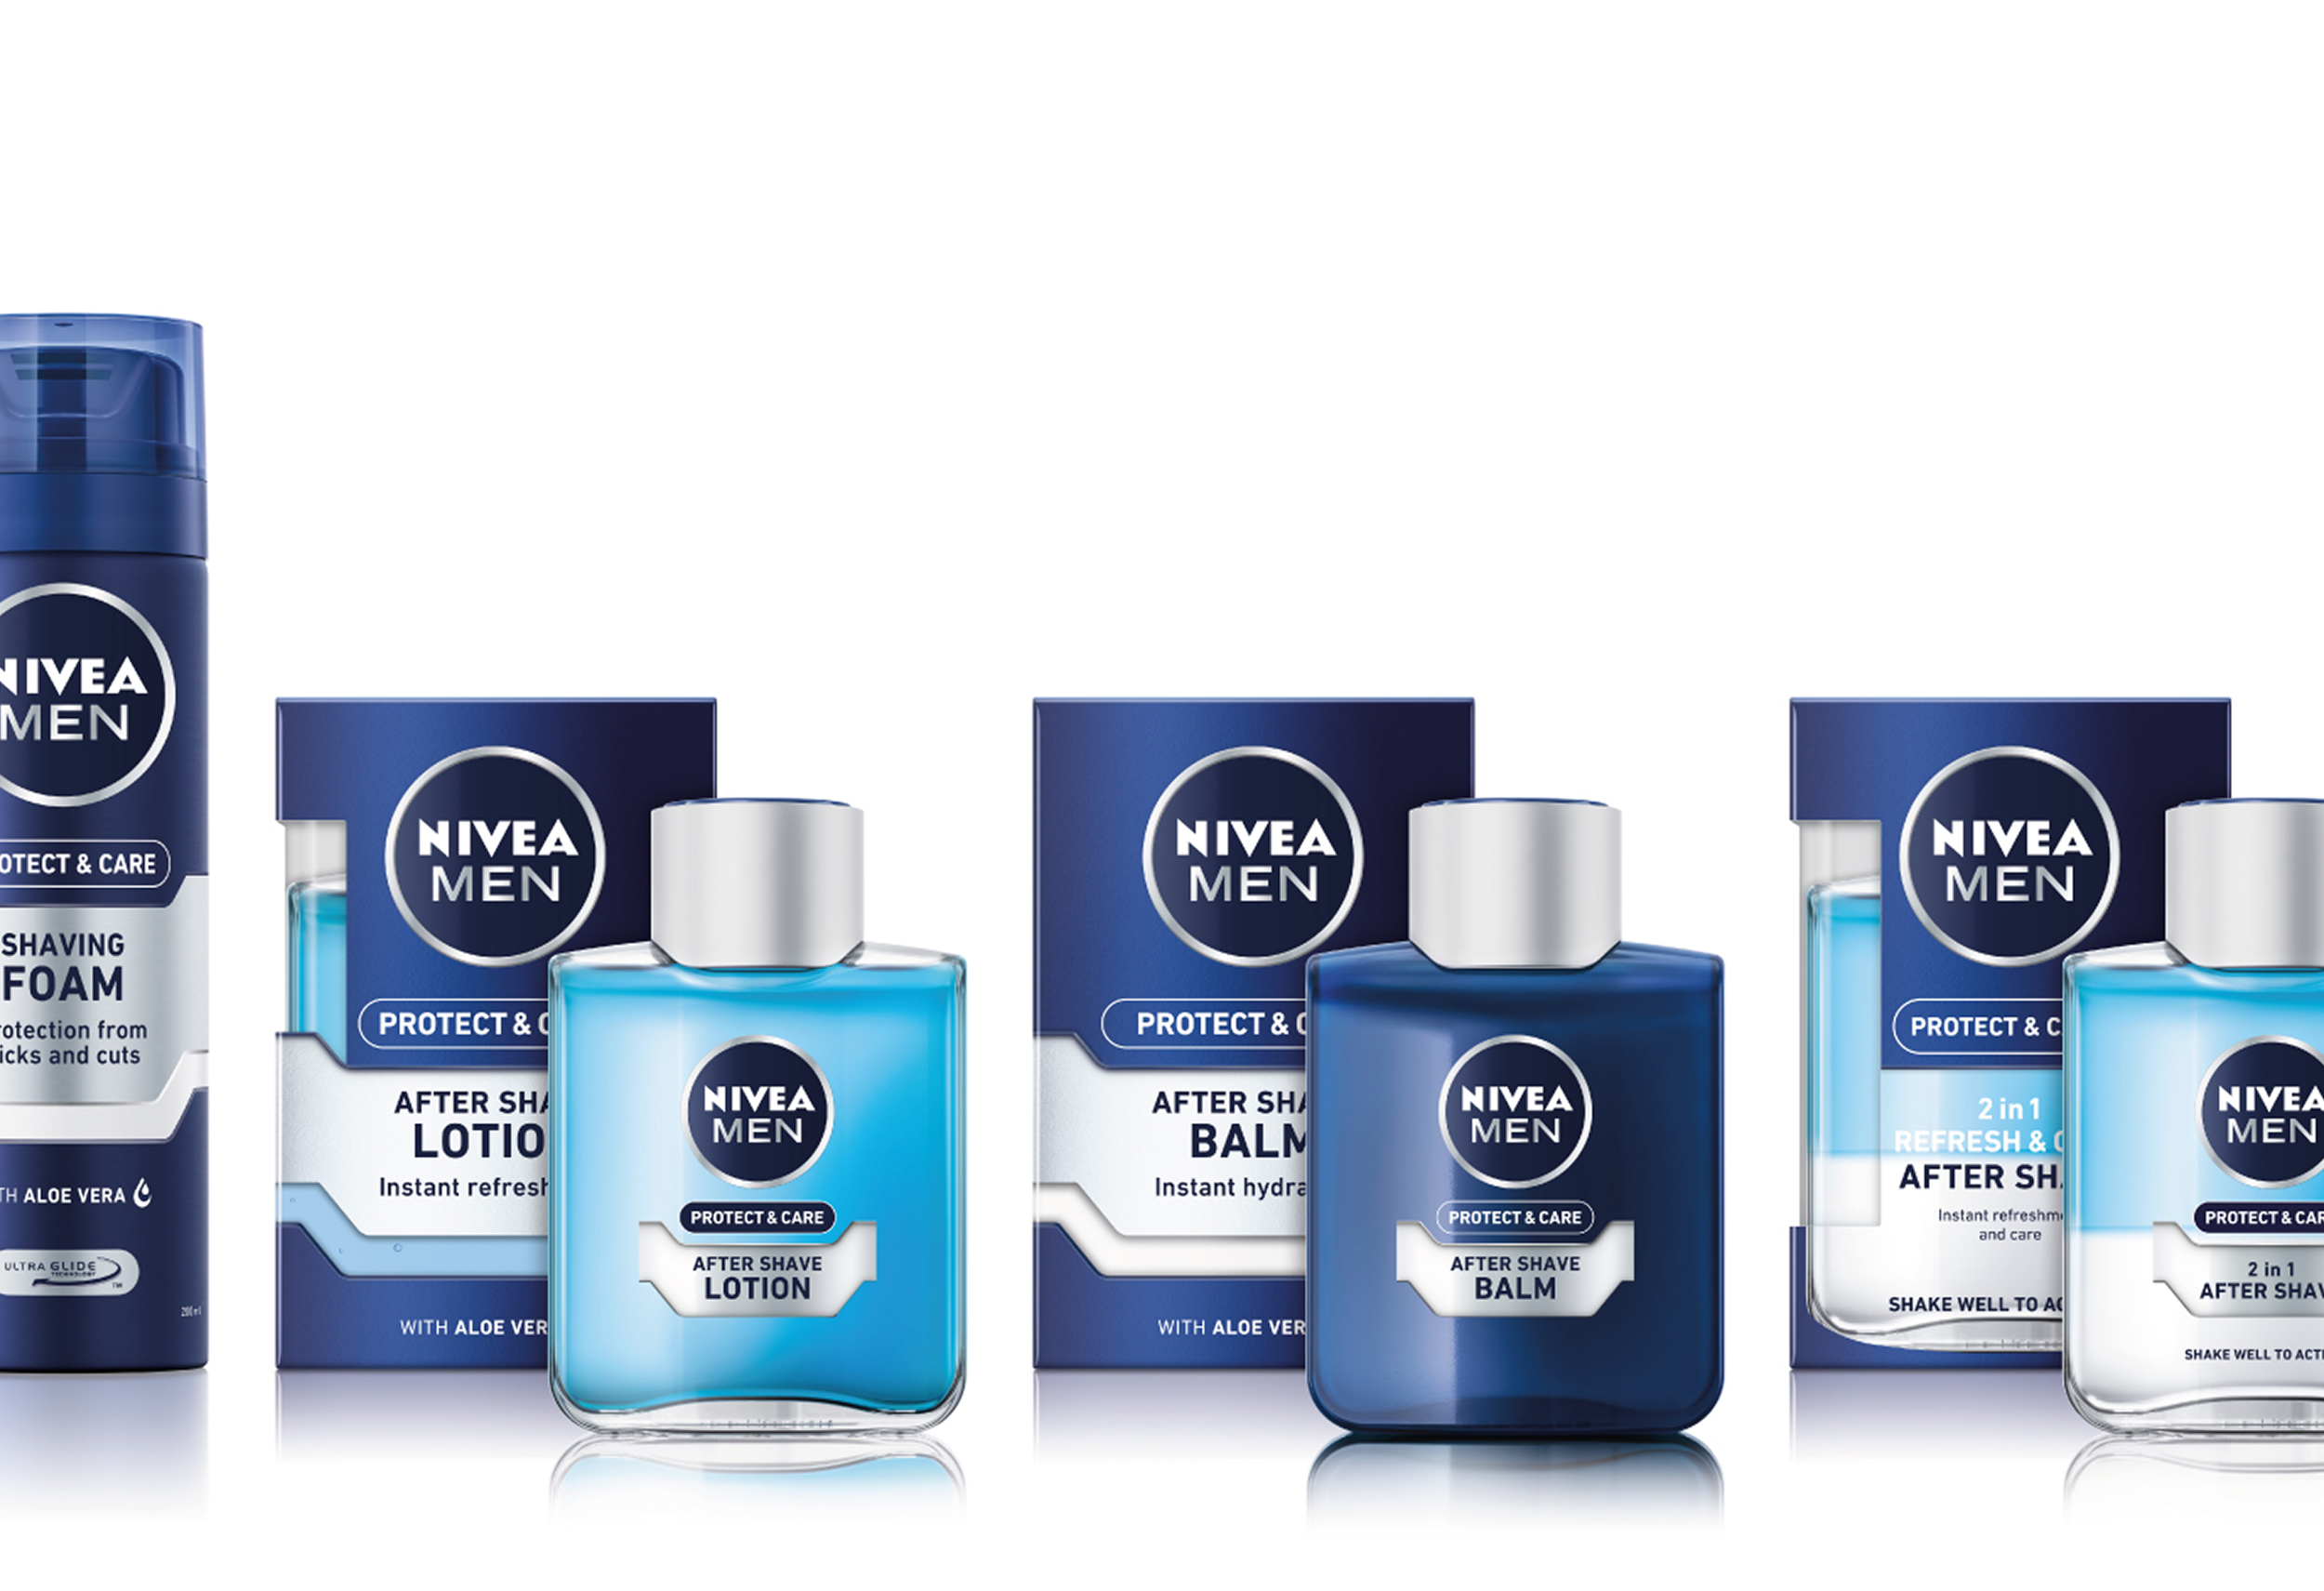 NIVEA MEN Sprache